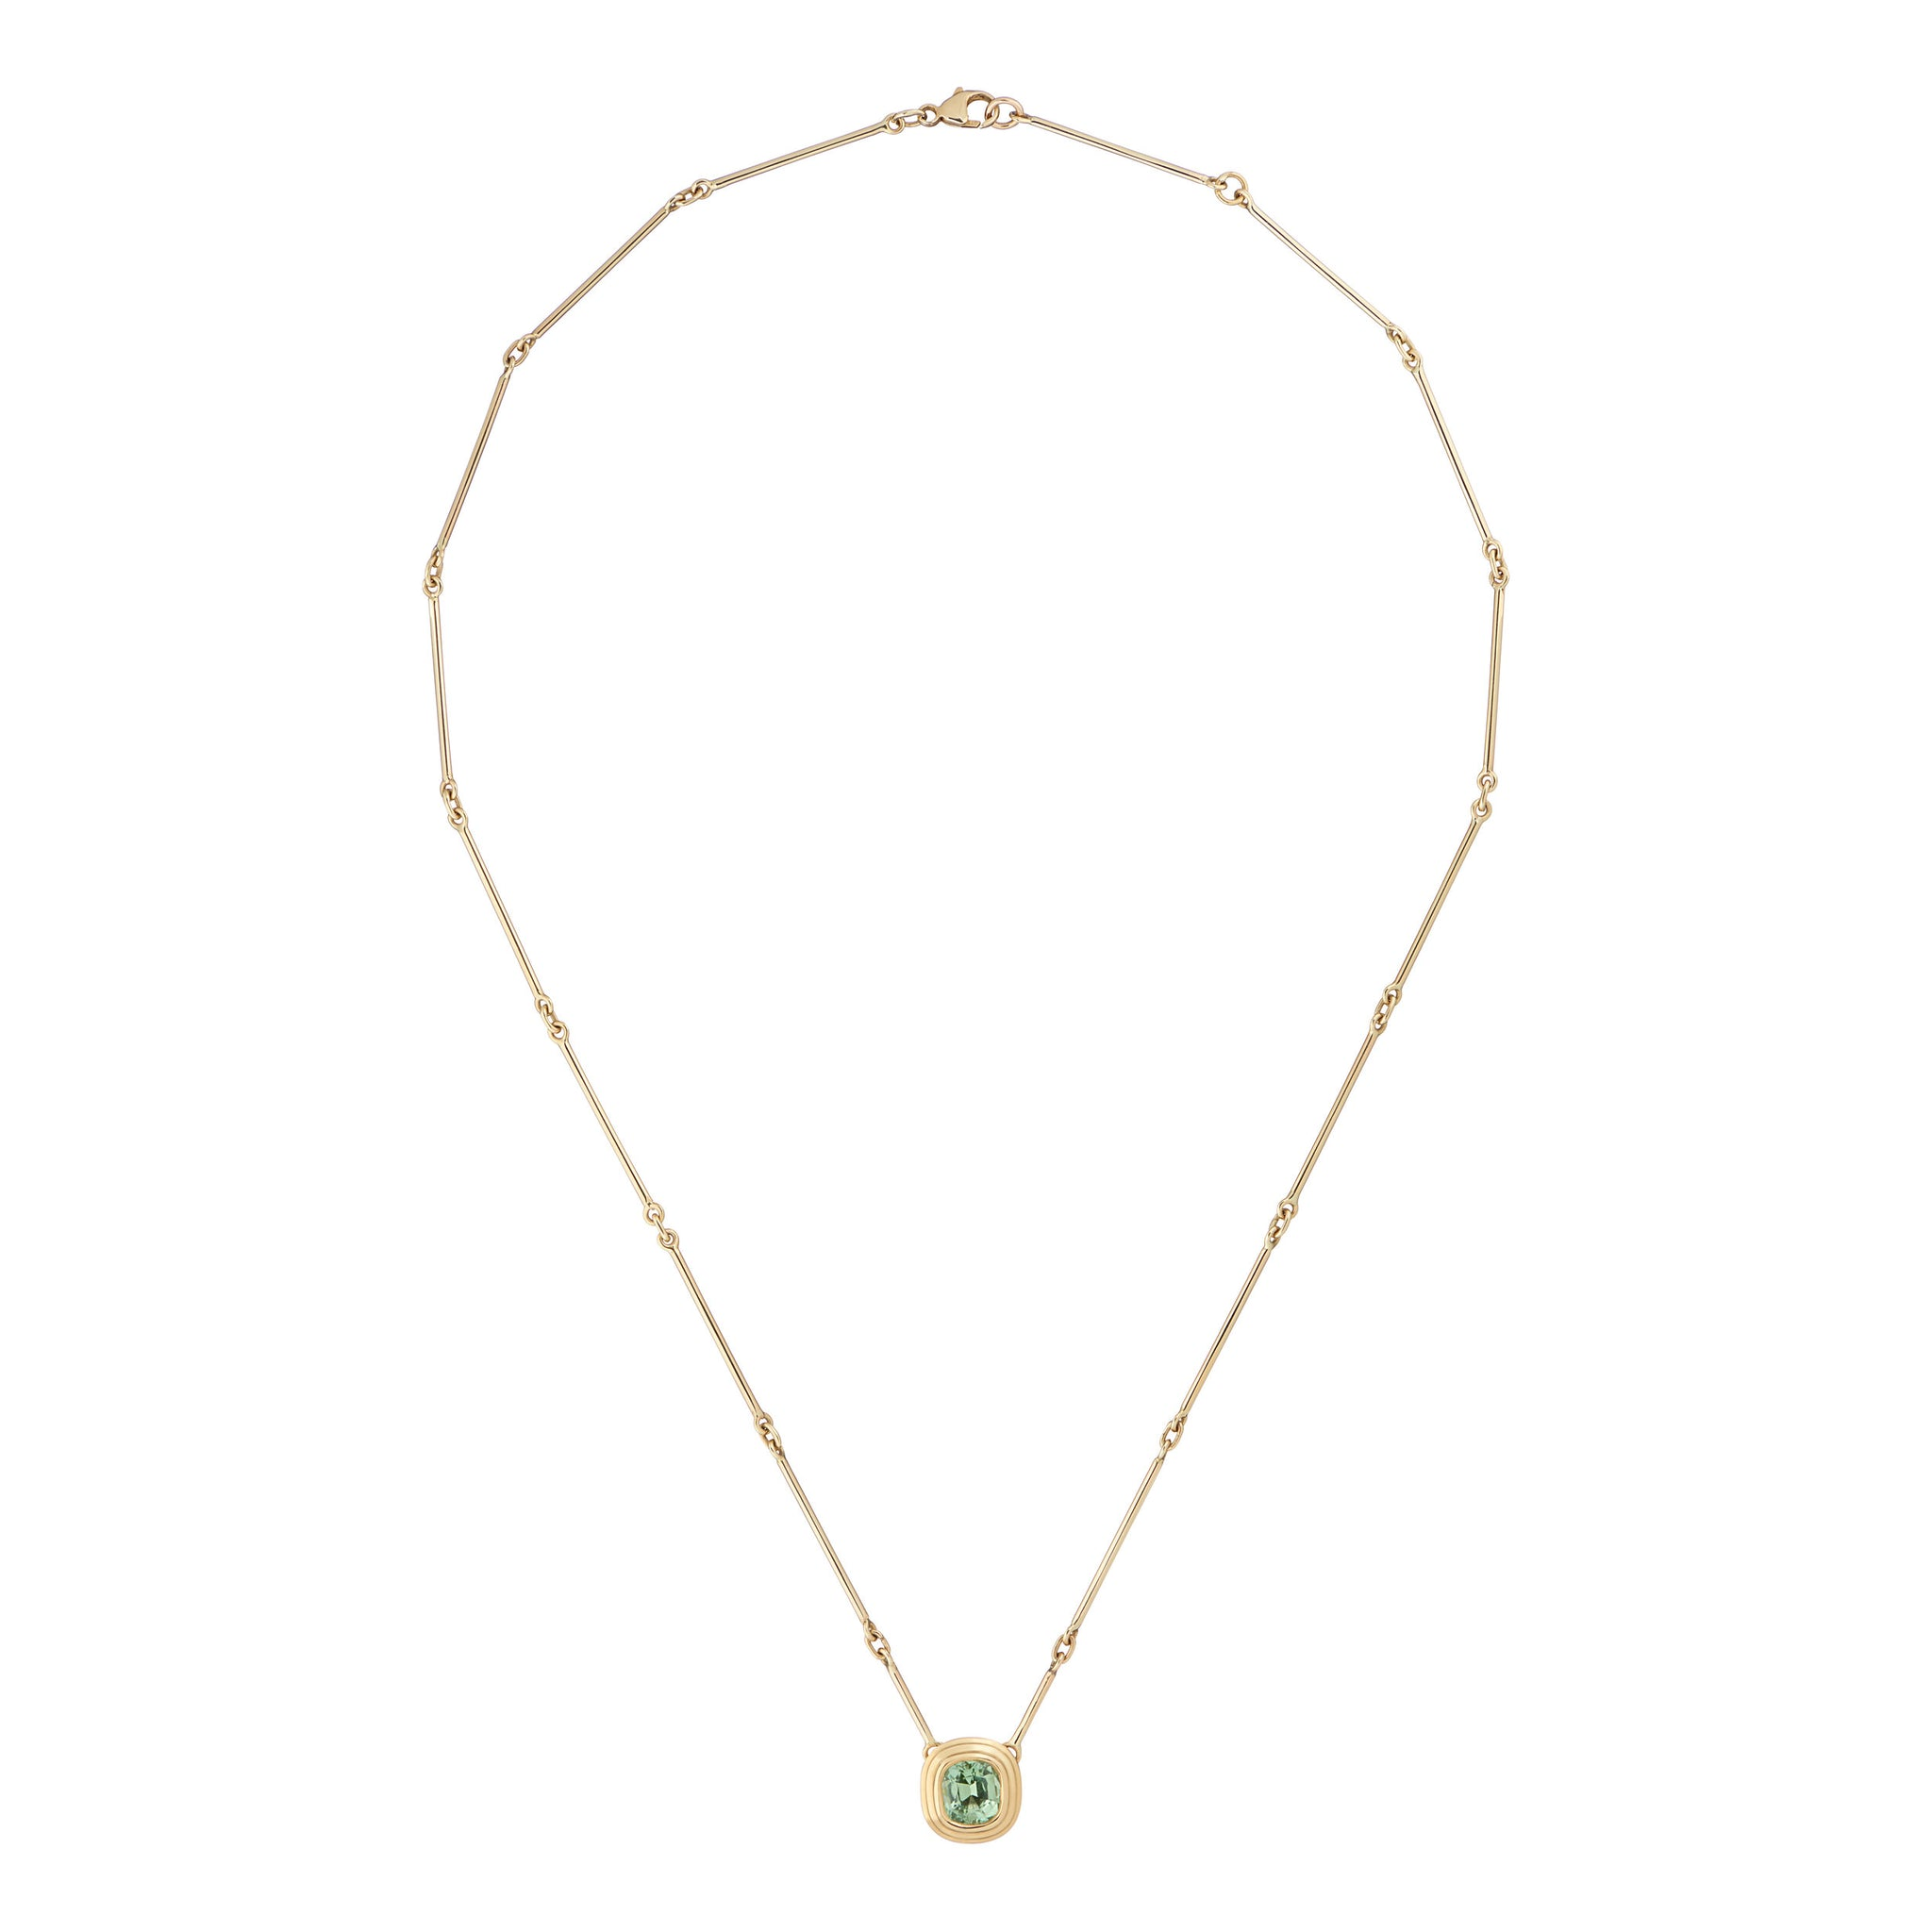 Athena Green Tourmaline 18kt Gold Necklace